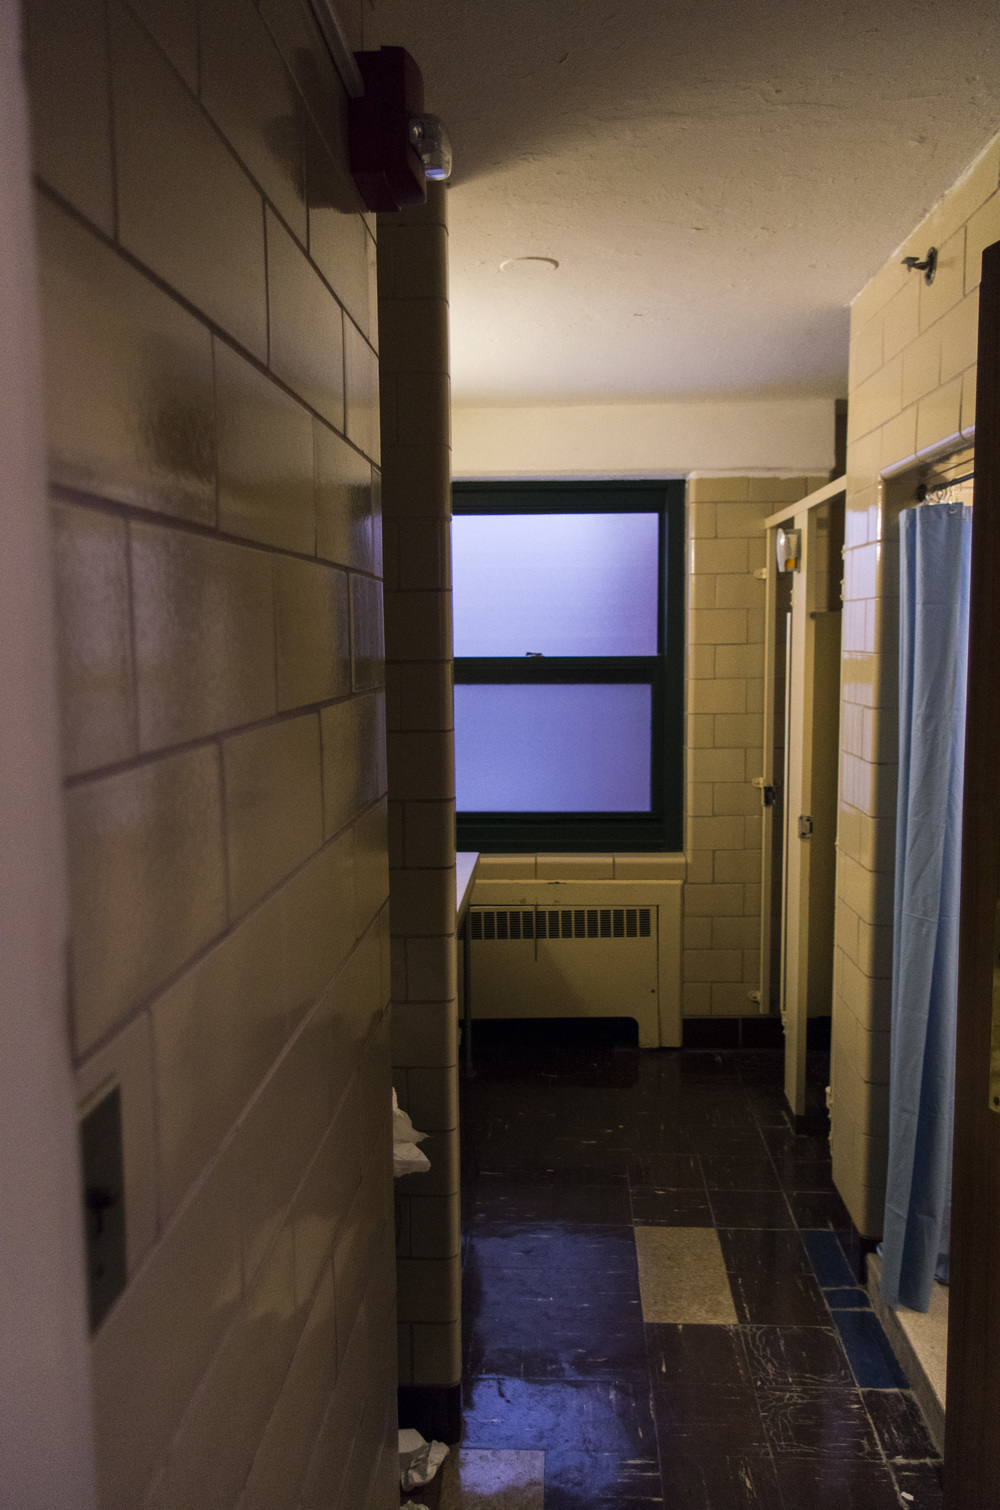 West Campus Residence Hall bathrooms on Jan. 23, 2016, prior to their expected renovations which will begin in May 2016. (William Chan/The Daily Campus)